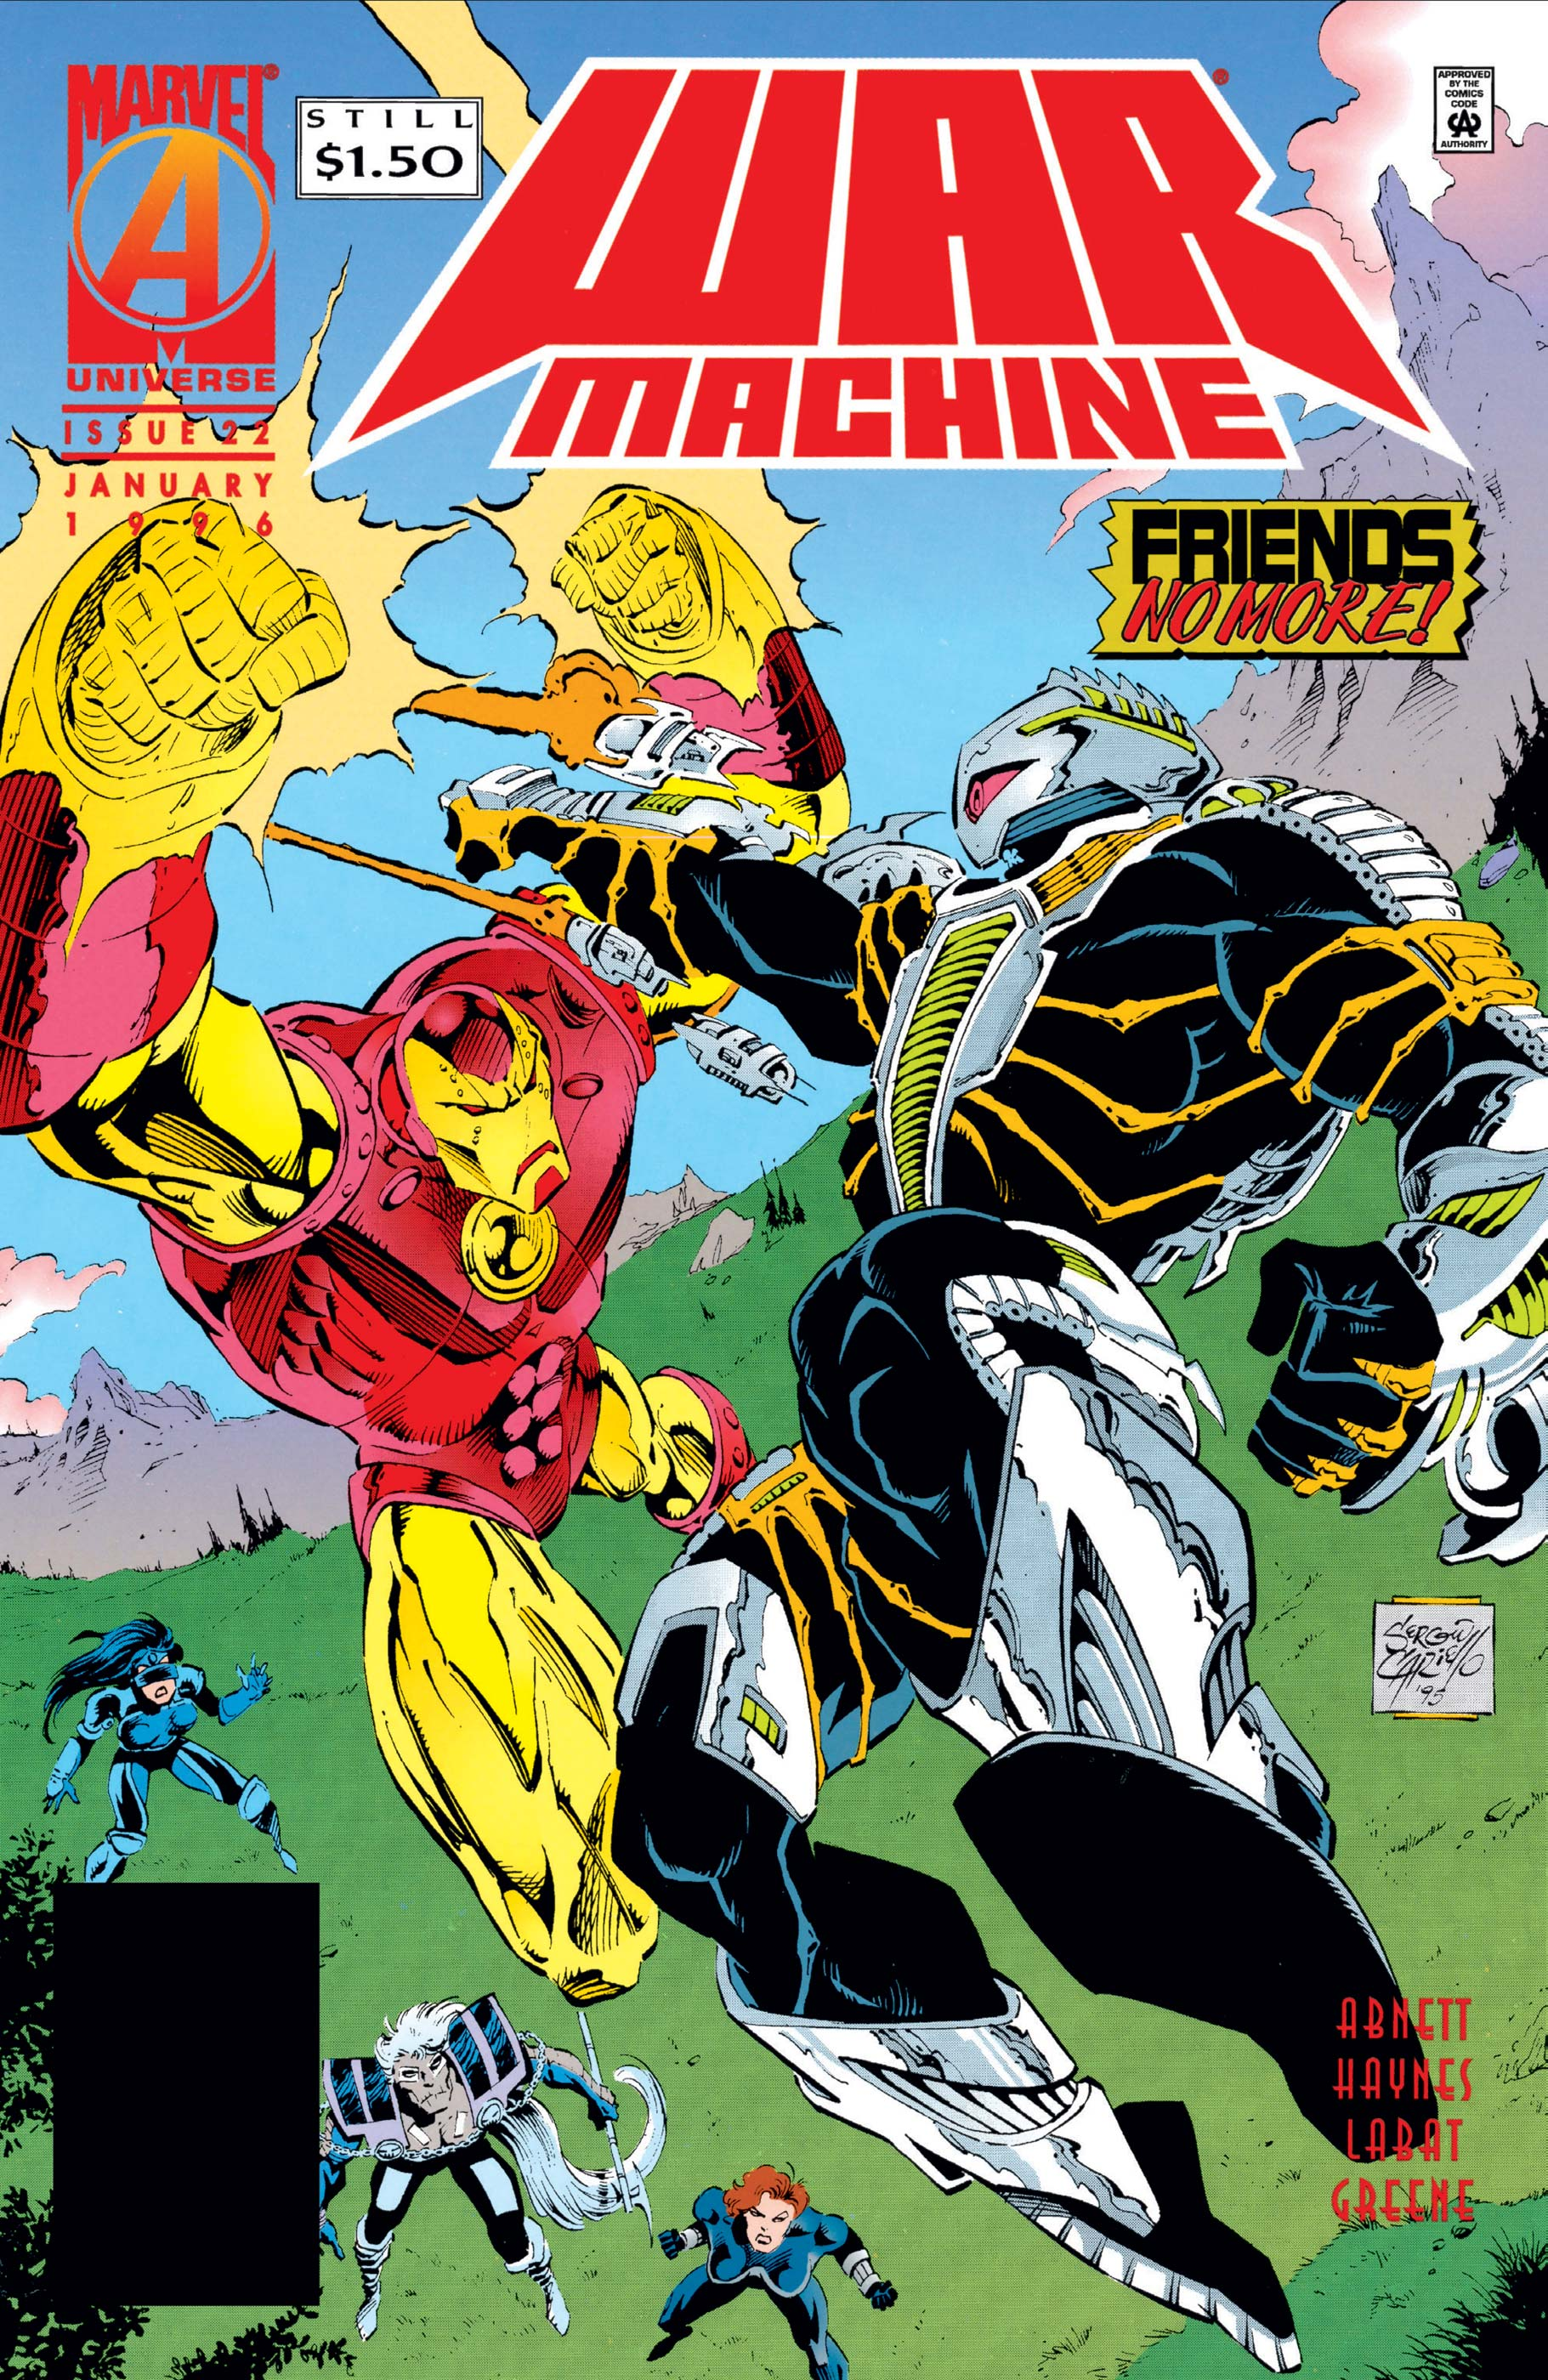 War Machine (1994) #22